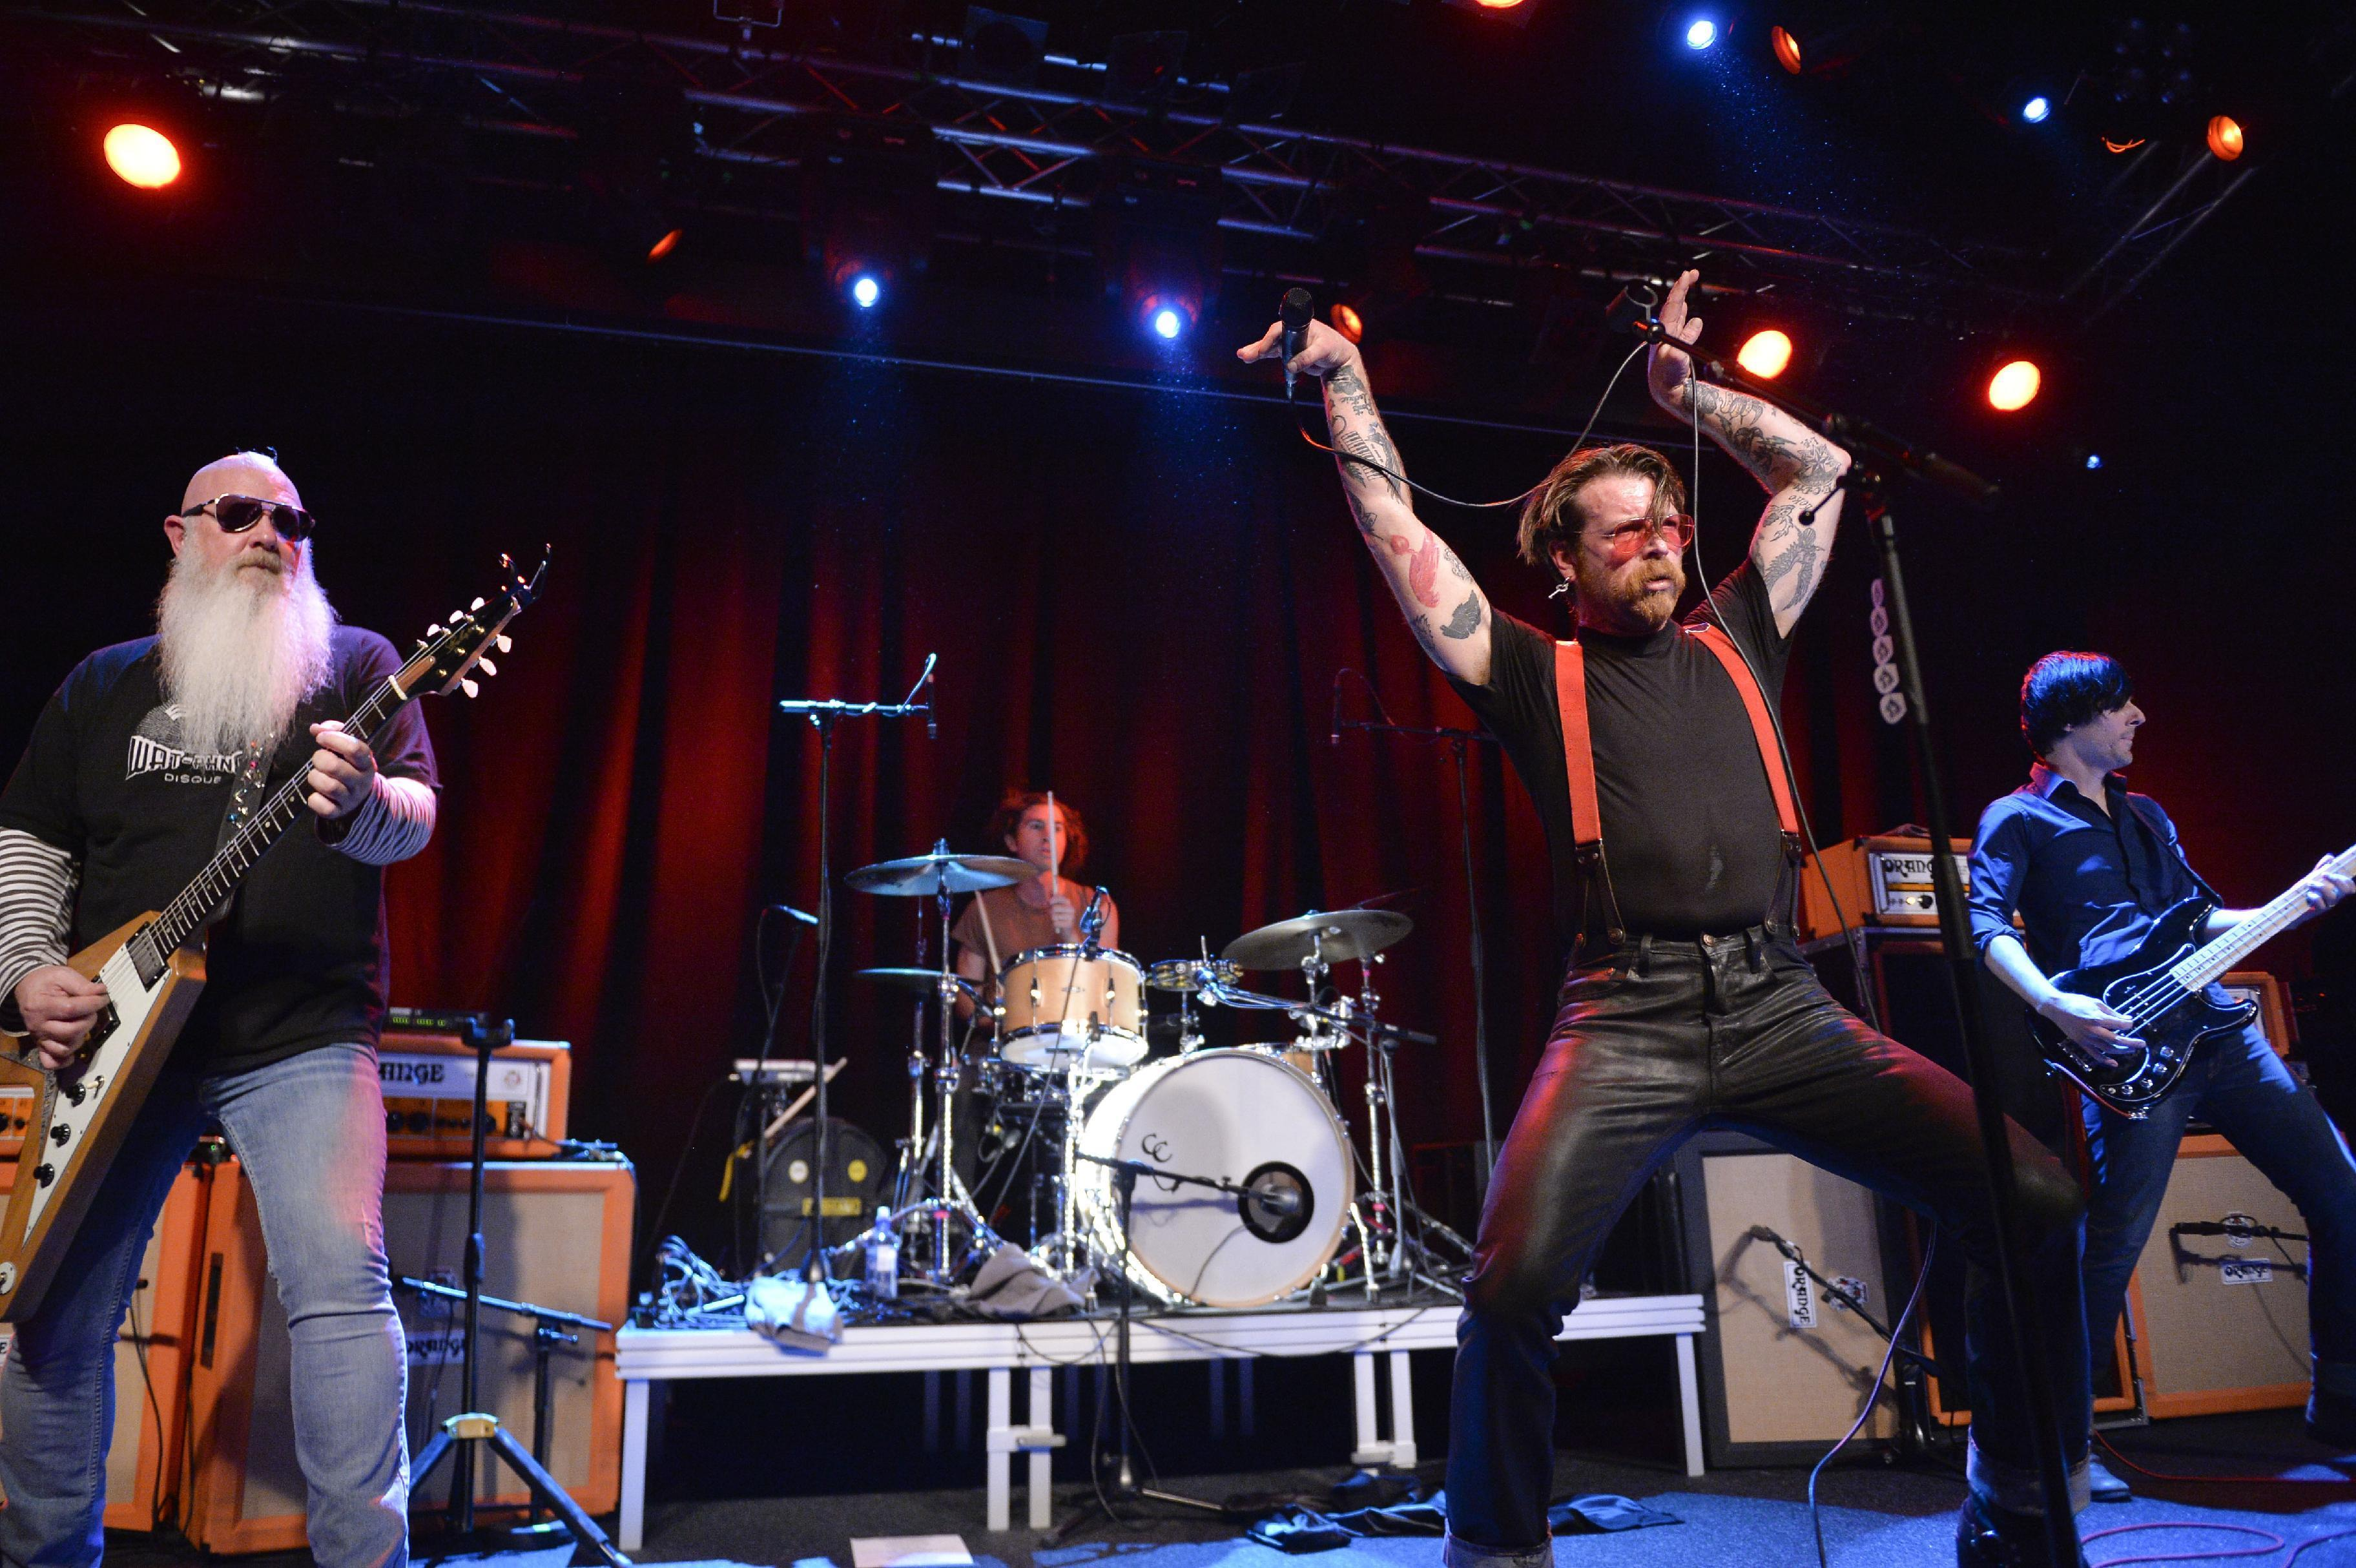 Eagles of Death Metal frontman feels 'sacred duty' to finish Paris gig